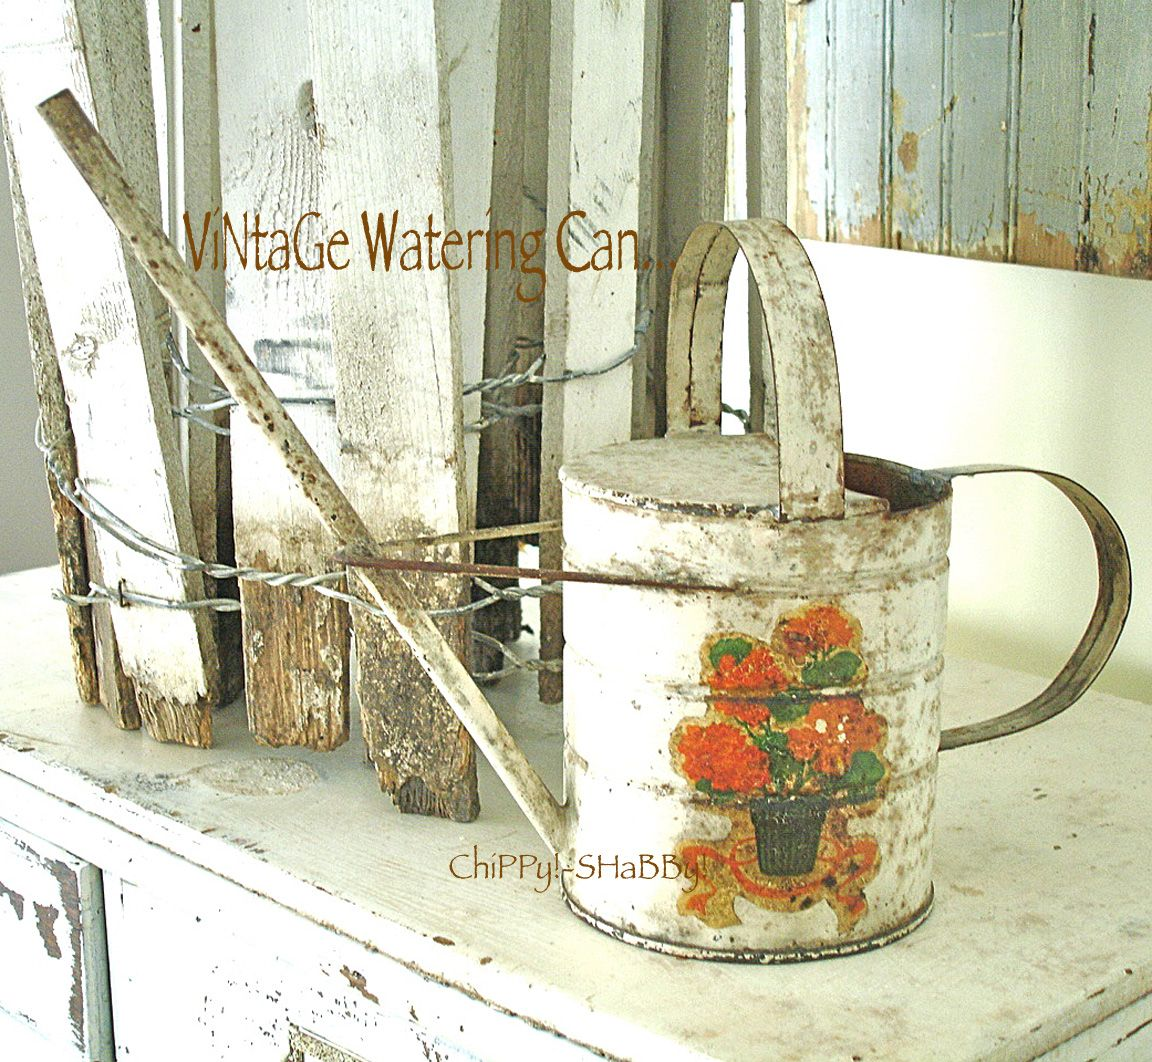 ChiPPy! - SHaBBy!  ViNtaGe Watering Can with PaTiNa...